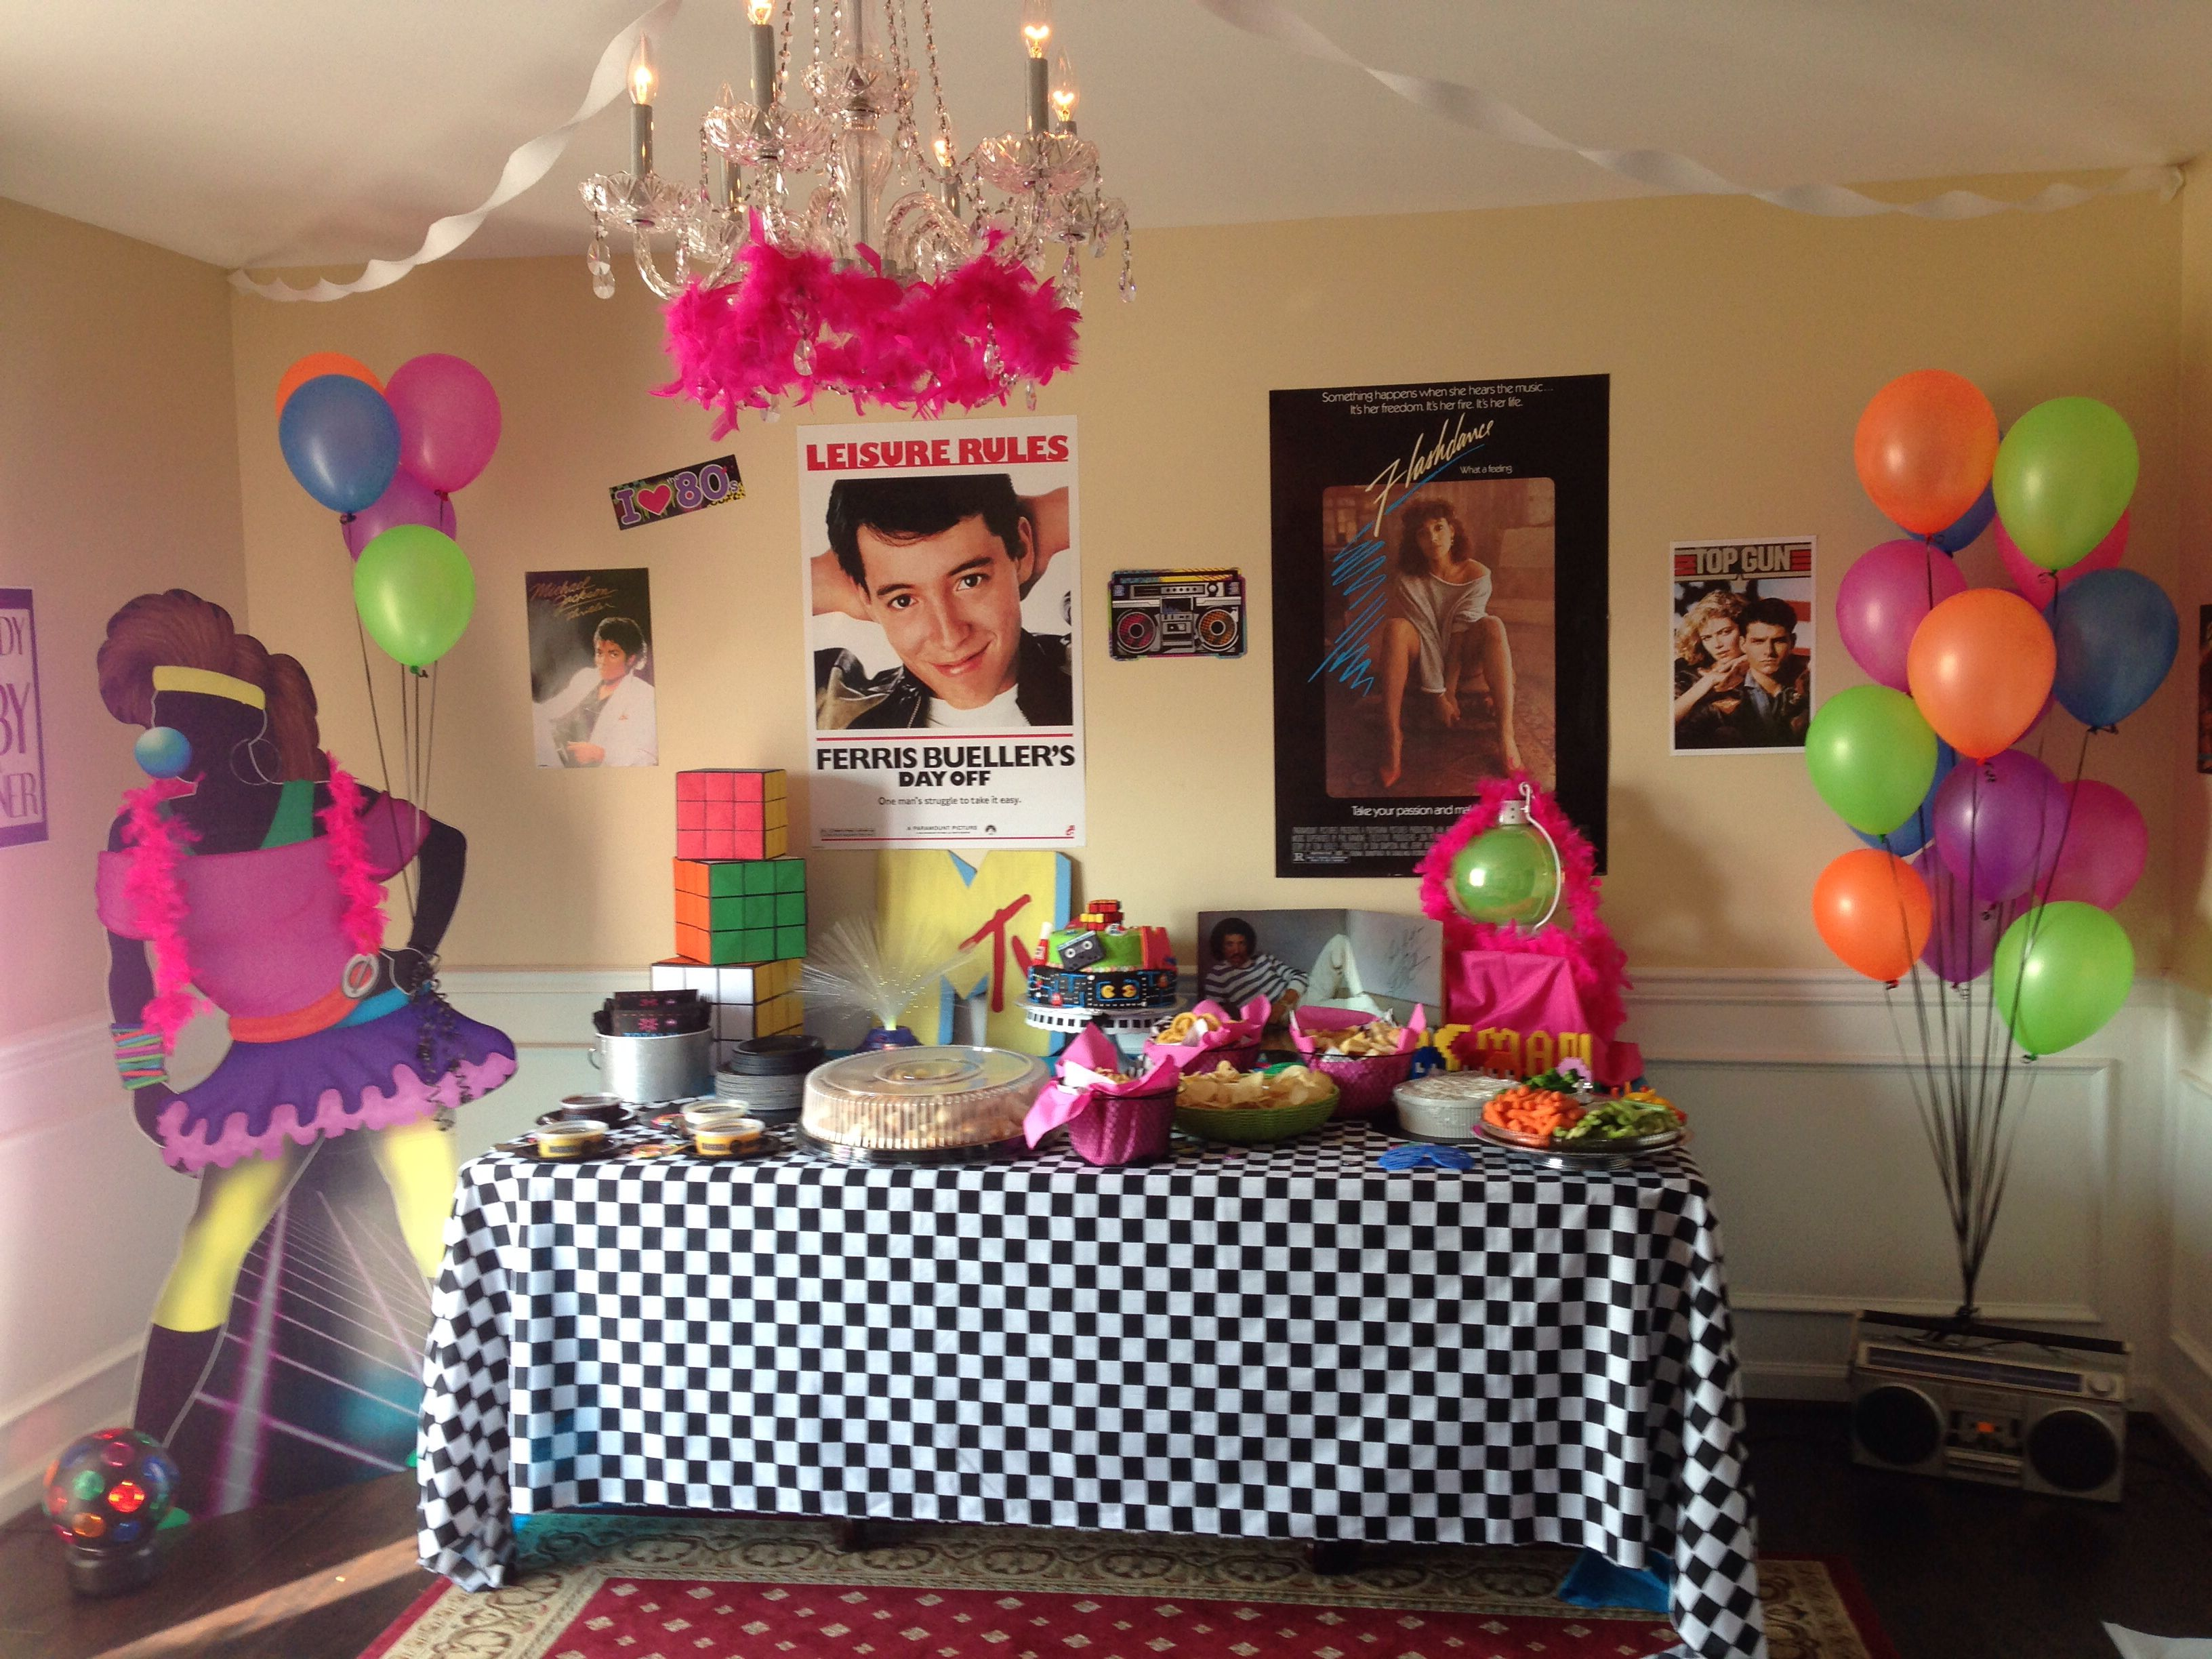 1980s theme party ideas pictures to pin on pinterest for 1980s party decoration ideas